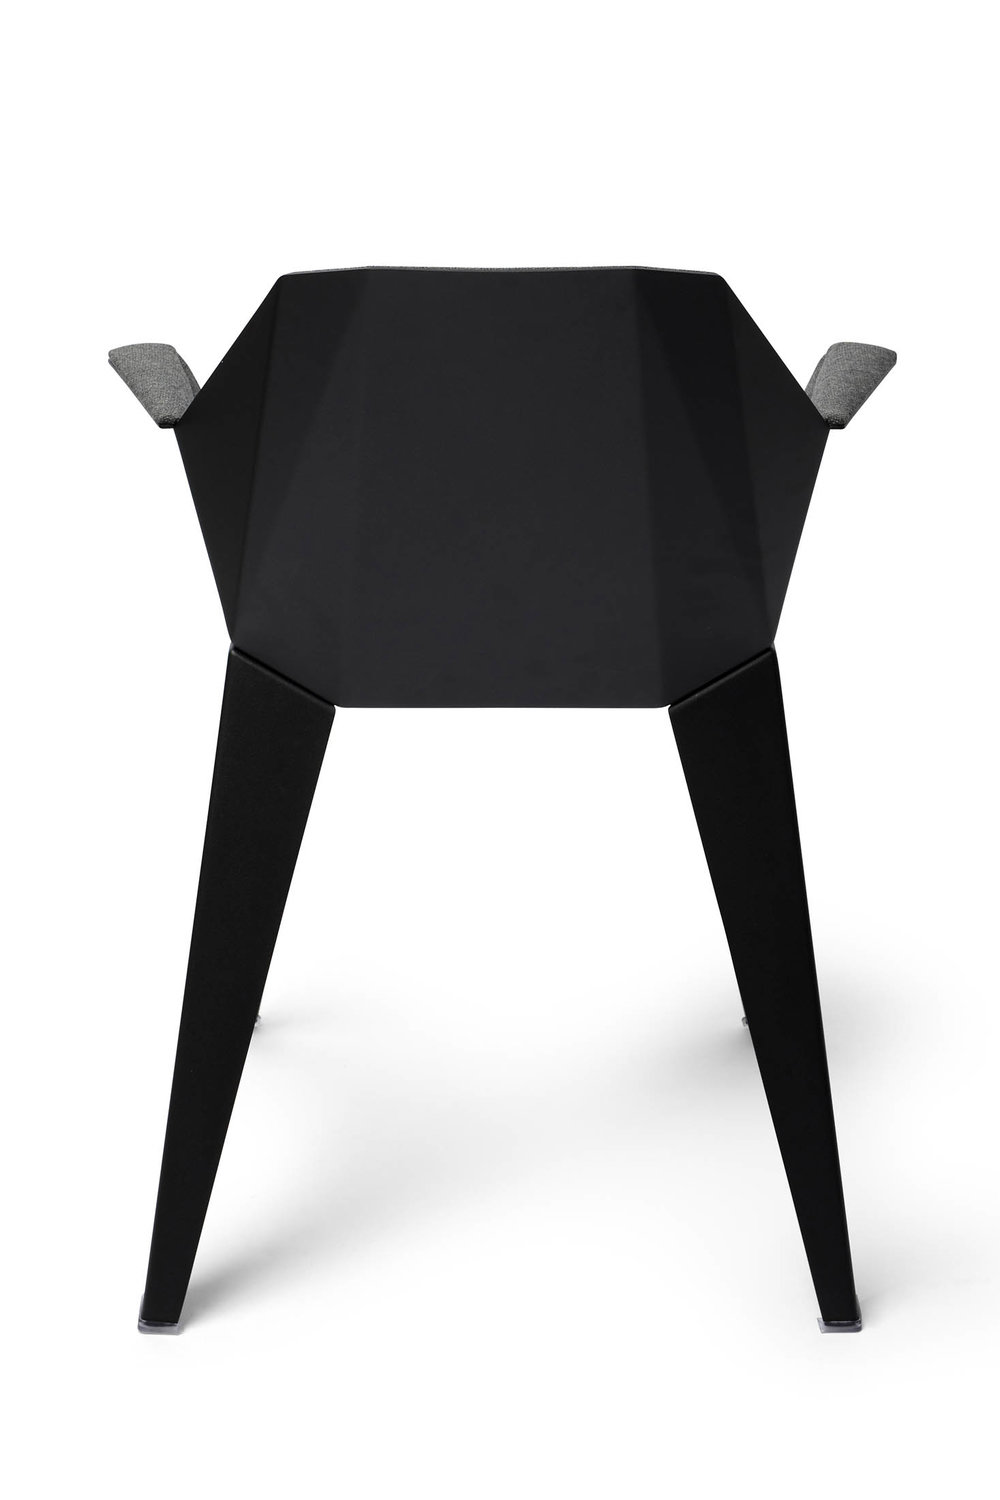 alumni-alpha-black-grey upholstered-back.jpg